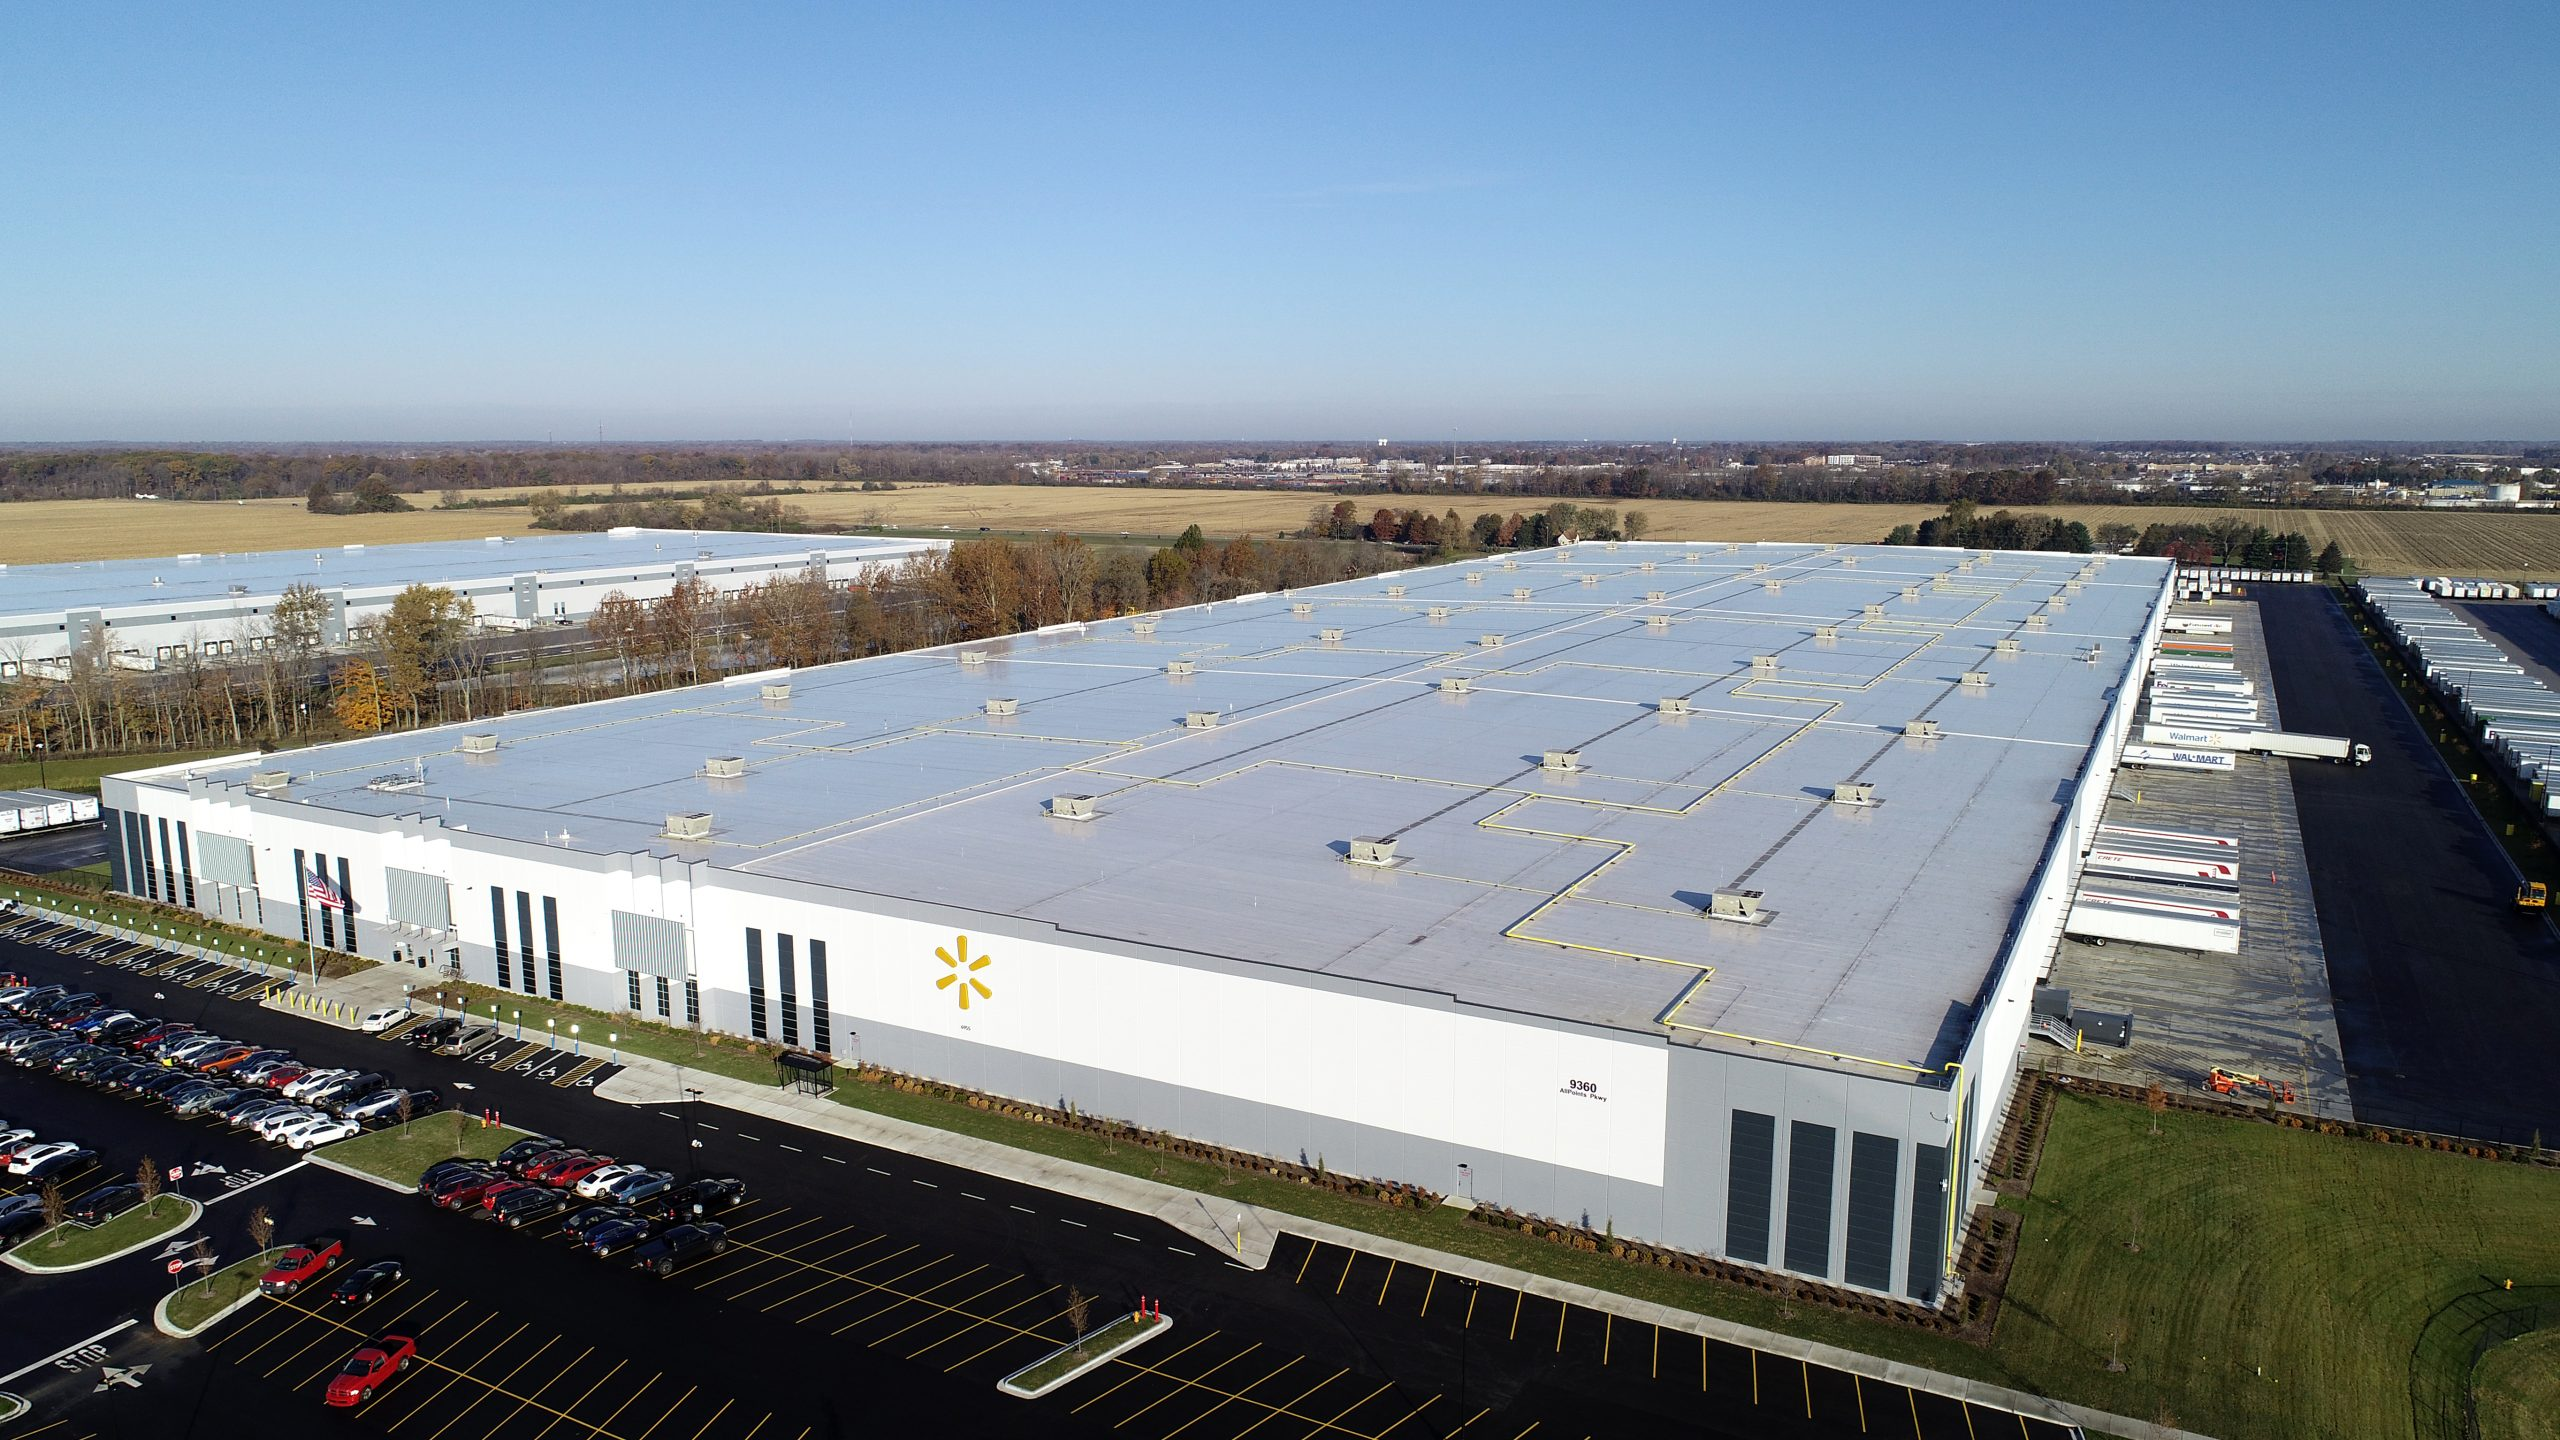 Walmart commercial roofing project by ce reeve roofing in Indiana